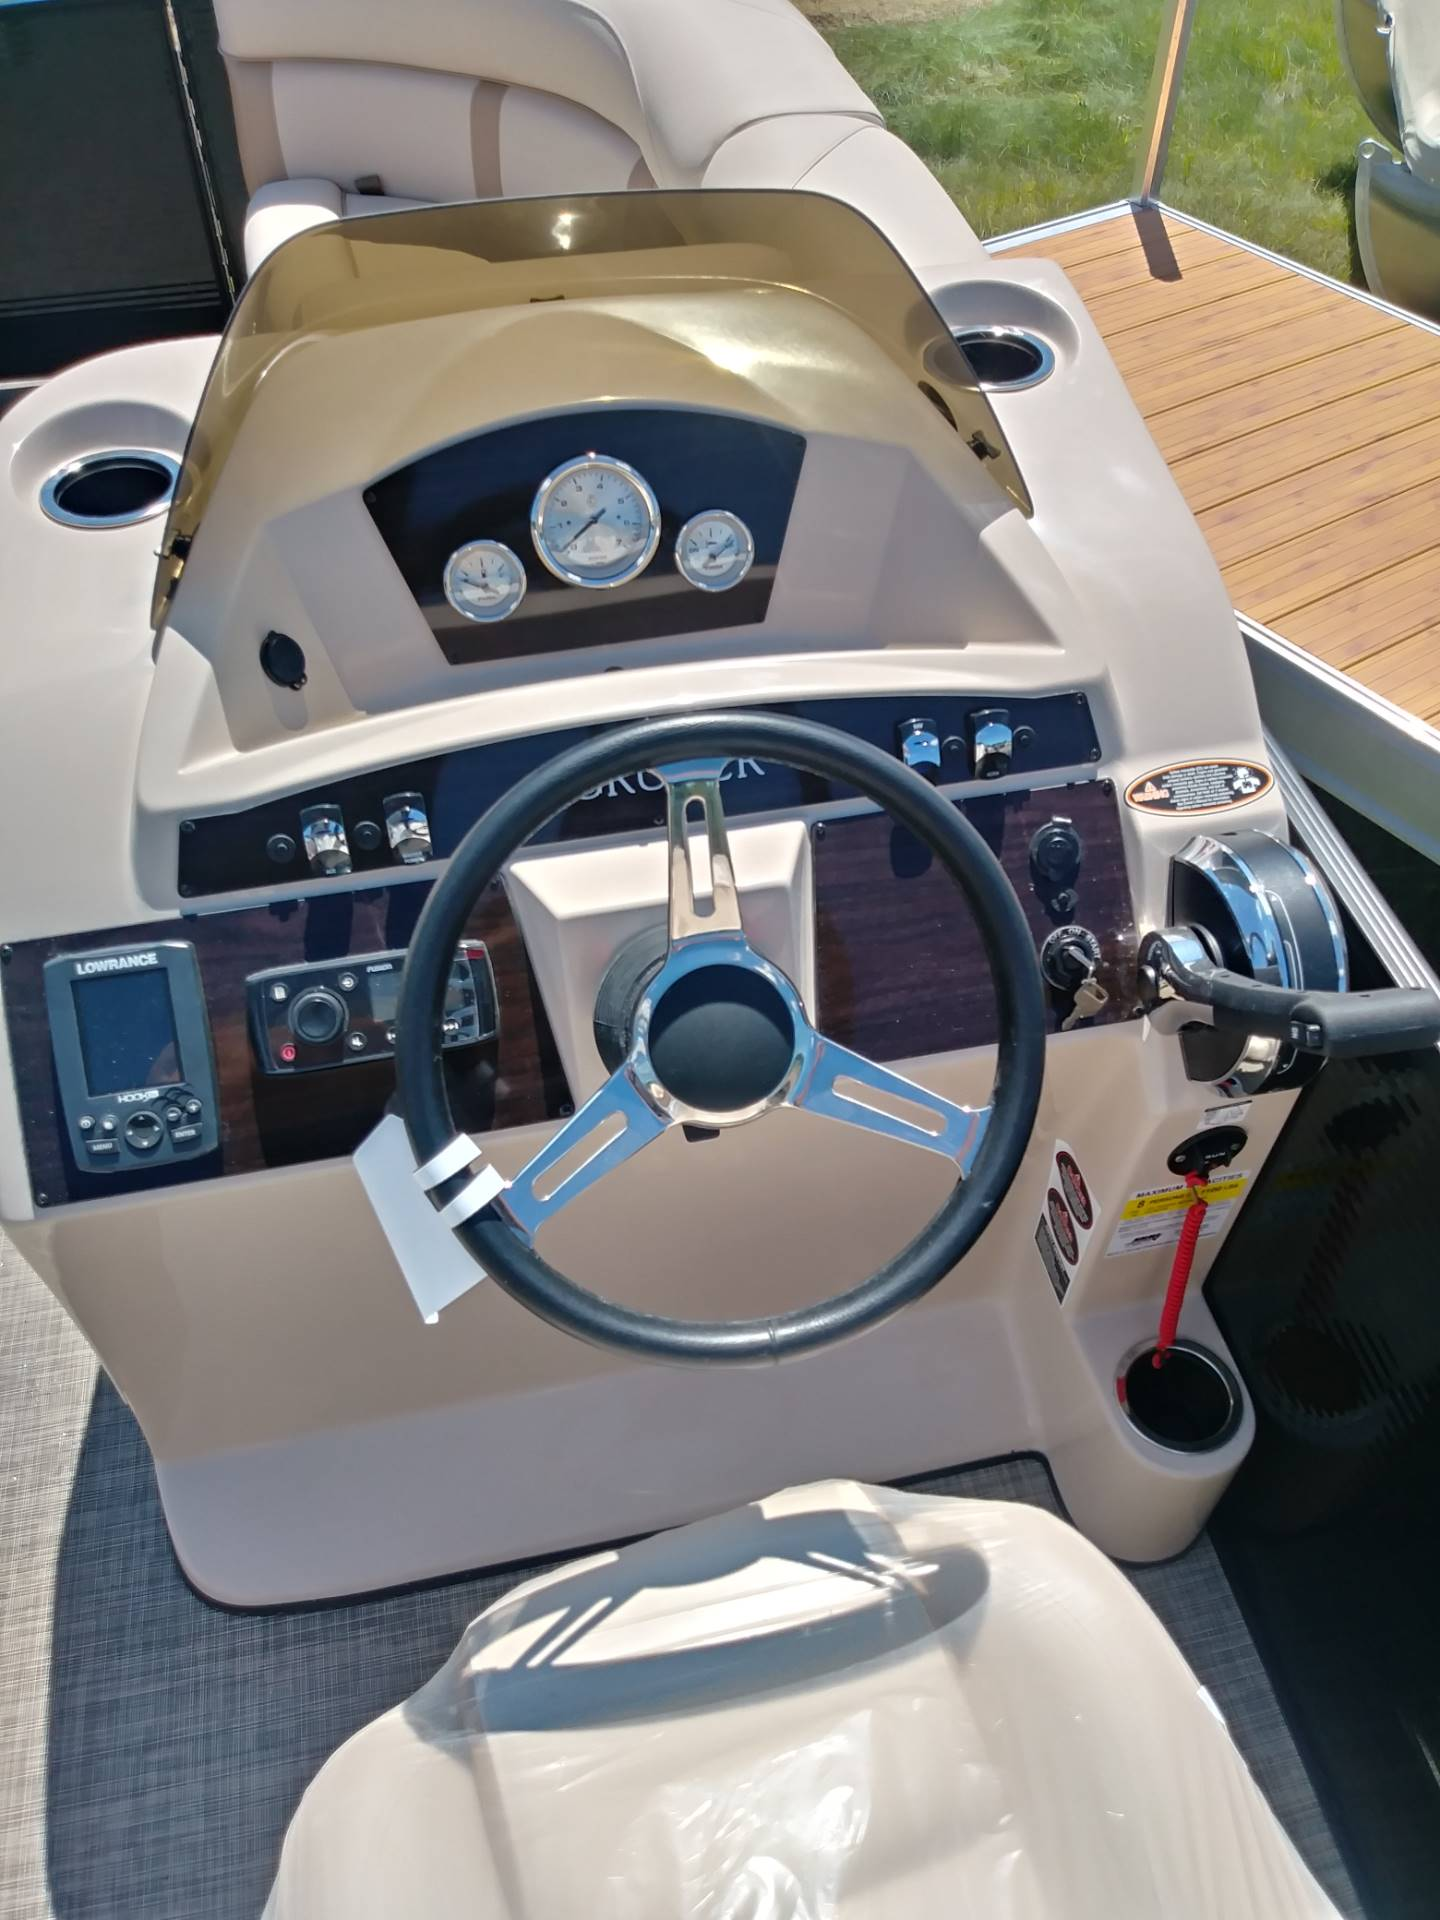 2018 Harris Cruiser 180 in Cable, Wisconsin